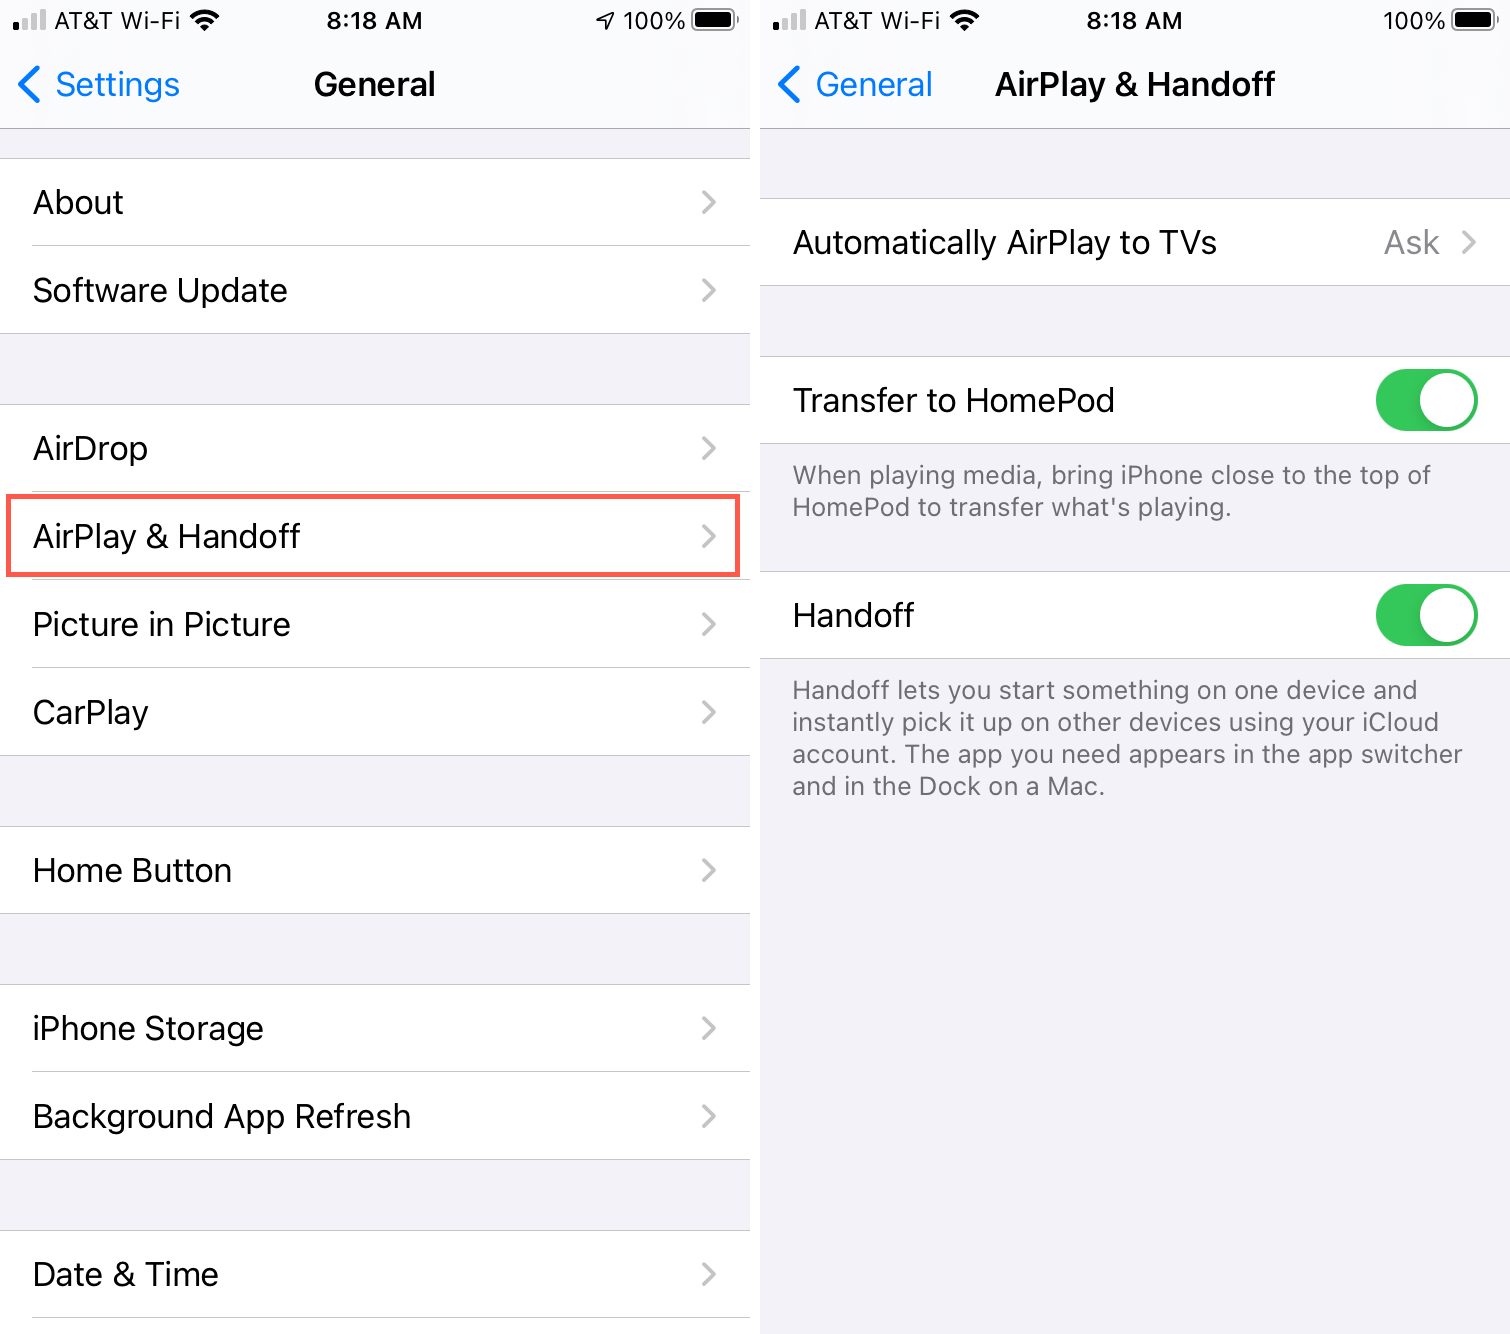 AirPlay and Handoff Settings on iPhone